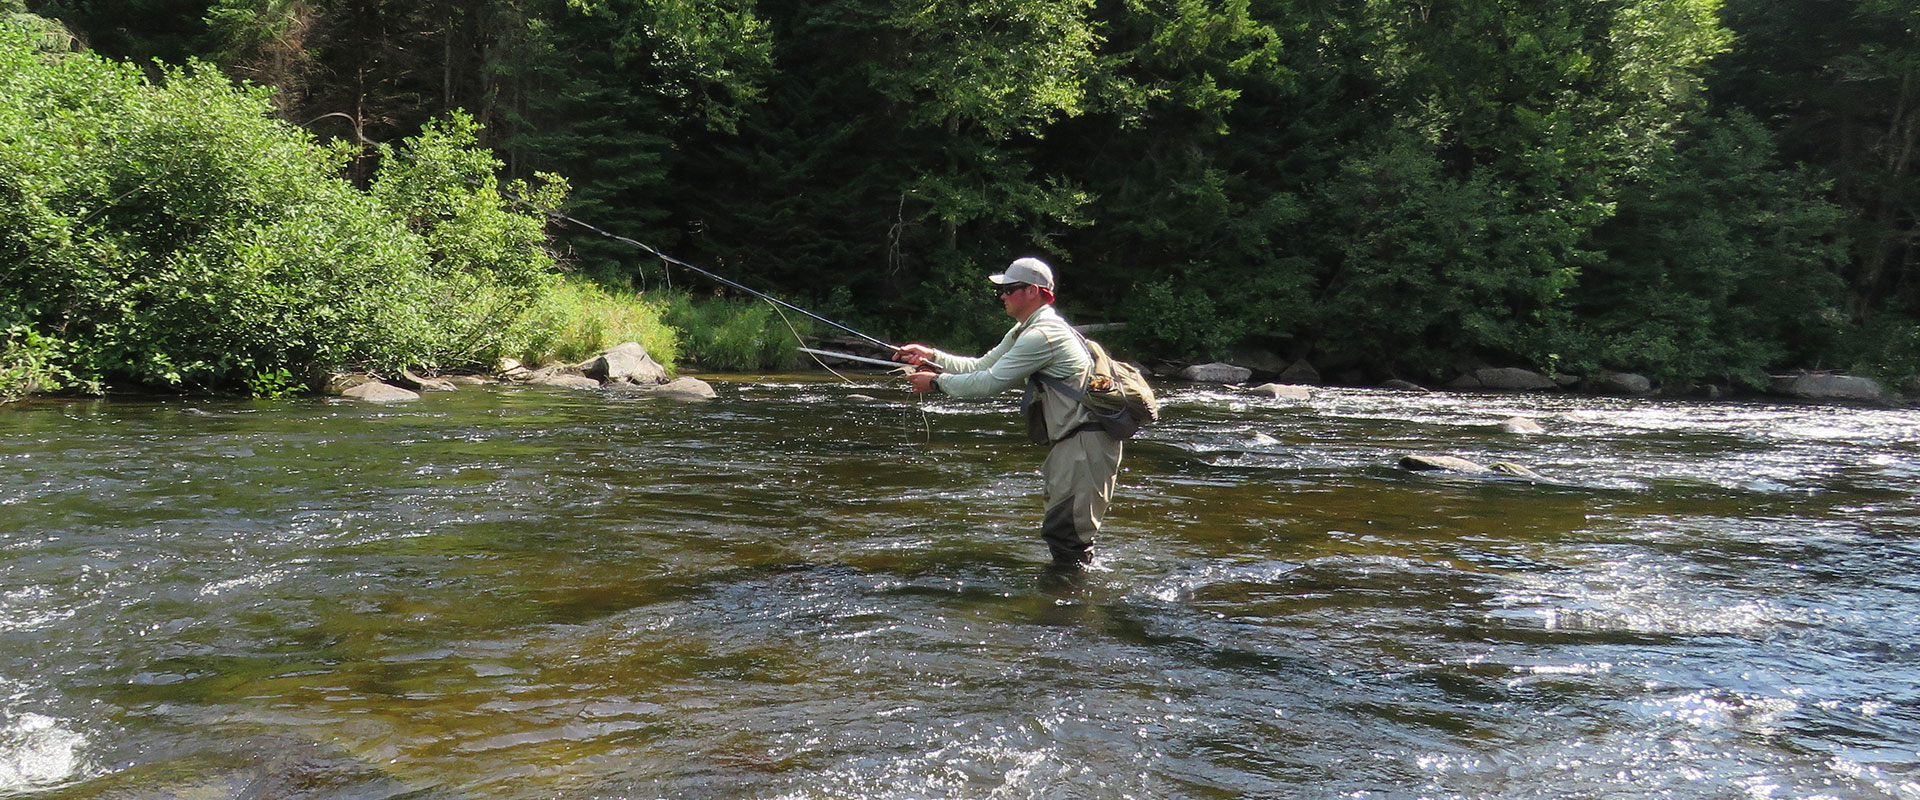 New england 39 s best fly fishing vacations book today for Best fly fishing